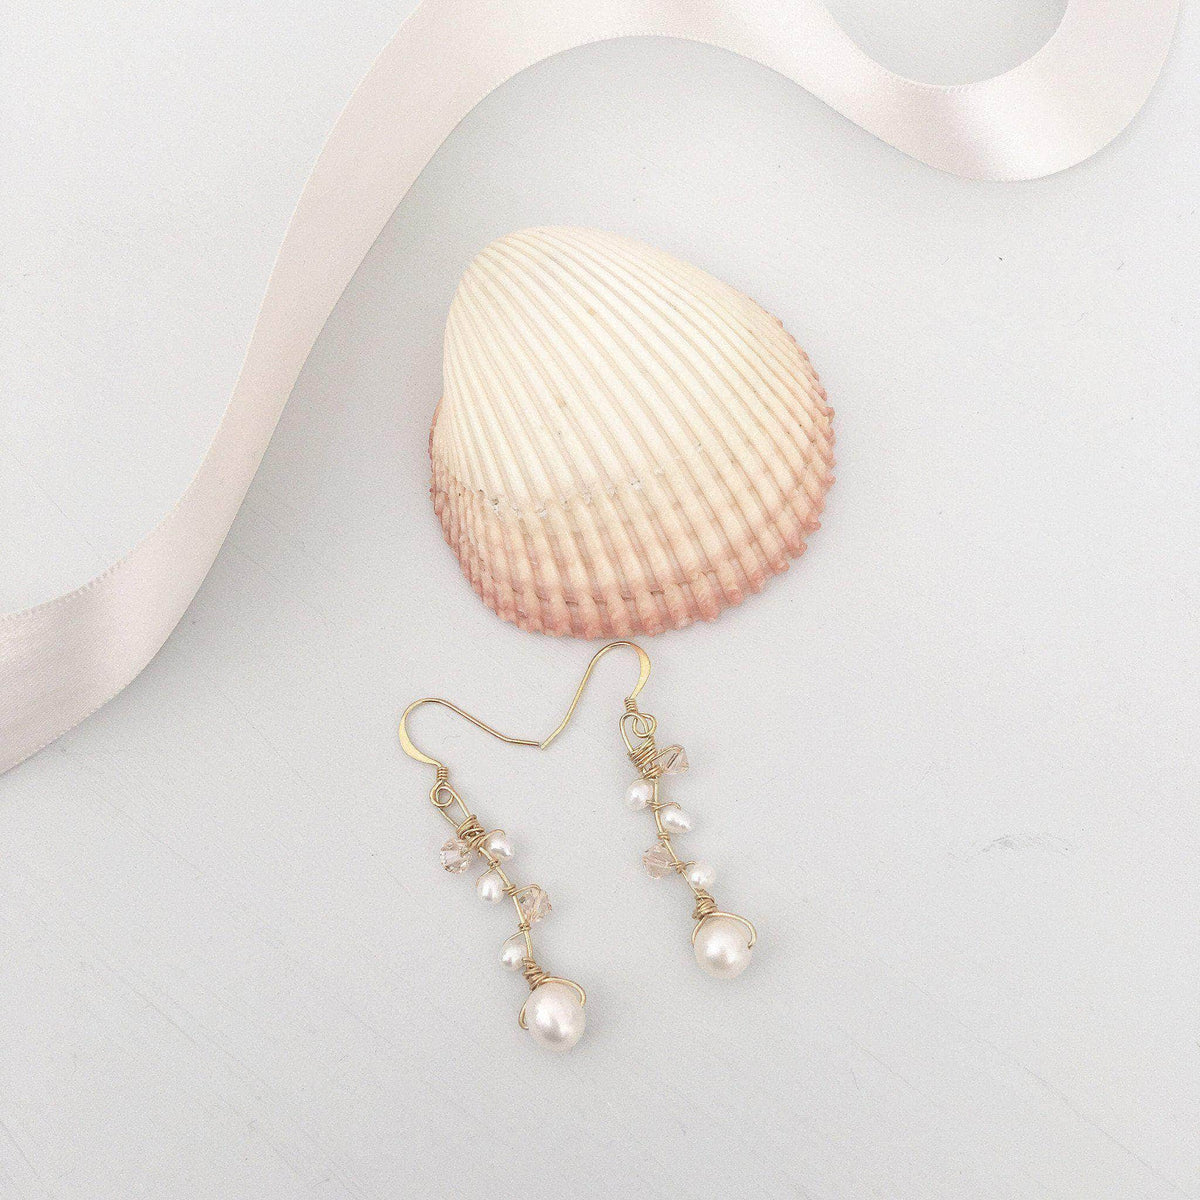 Wedding Earring Goldblush Gold wedding earrings of blush crystal and freshwater pearl - 'Addie'